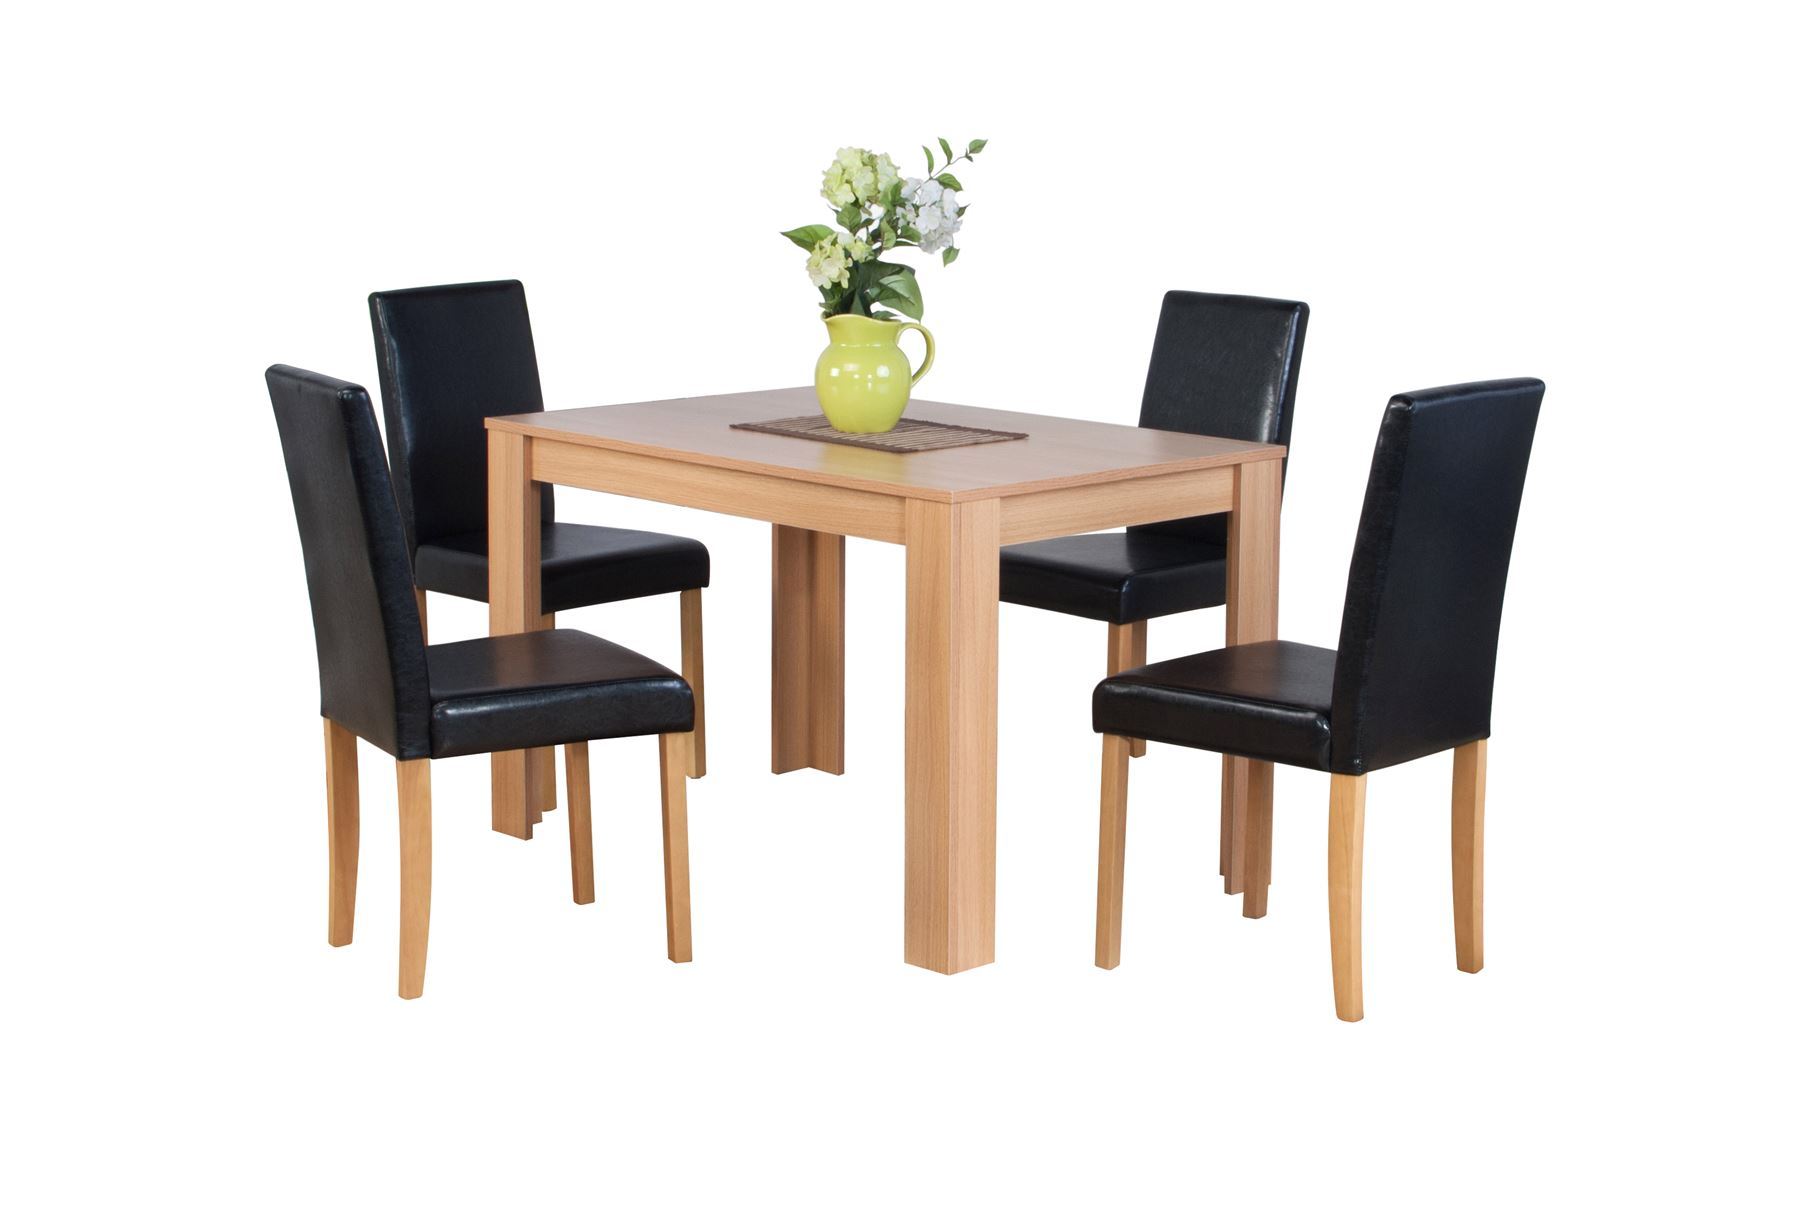 Dover Natural Or Dark Brown Oak Effect Wooden Dining Table